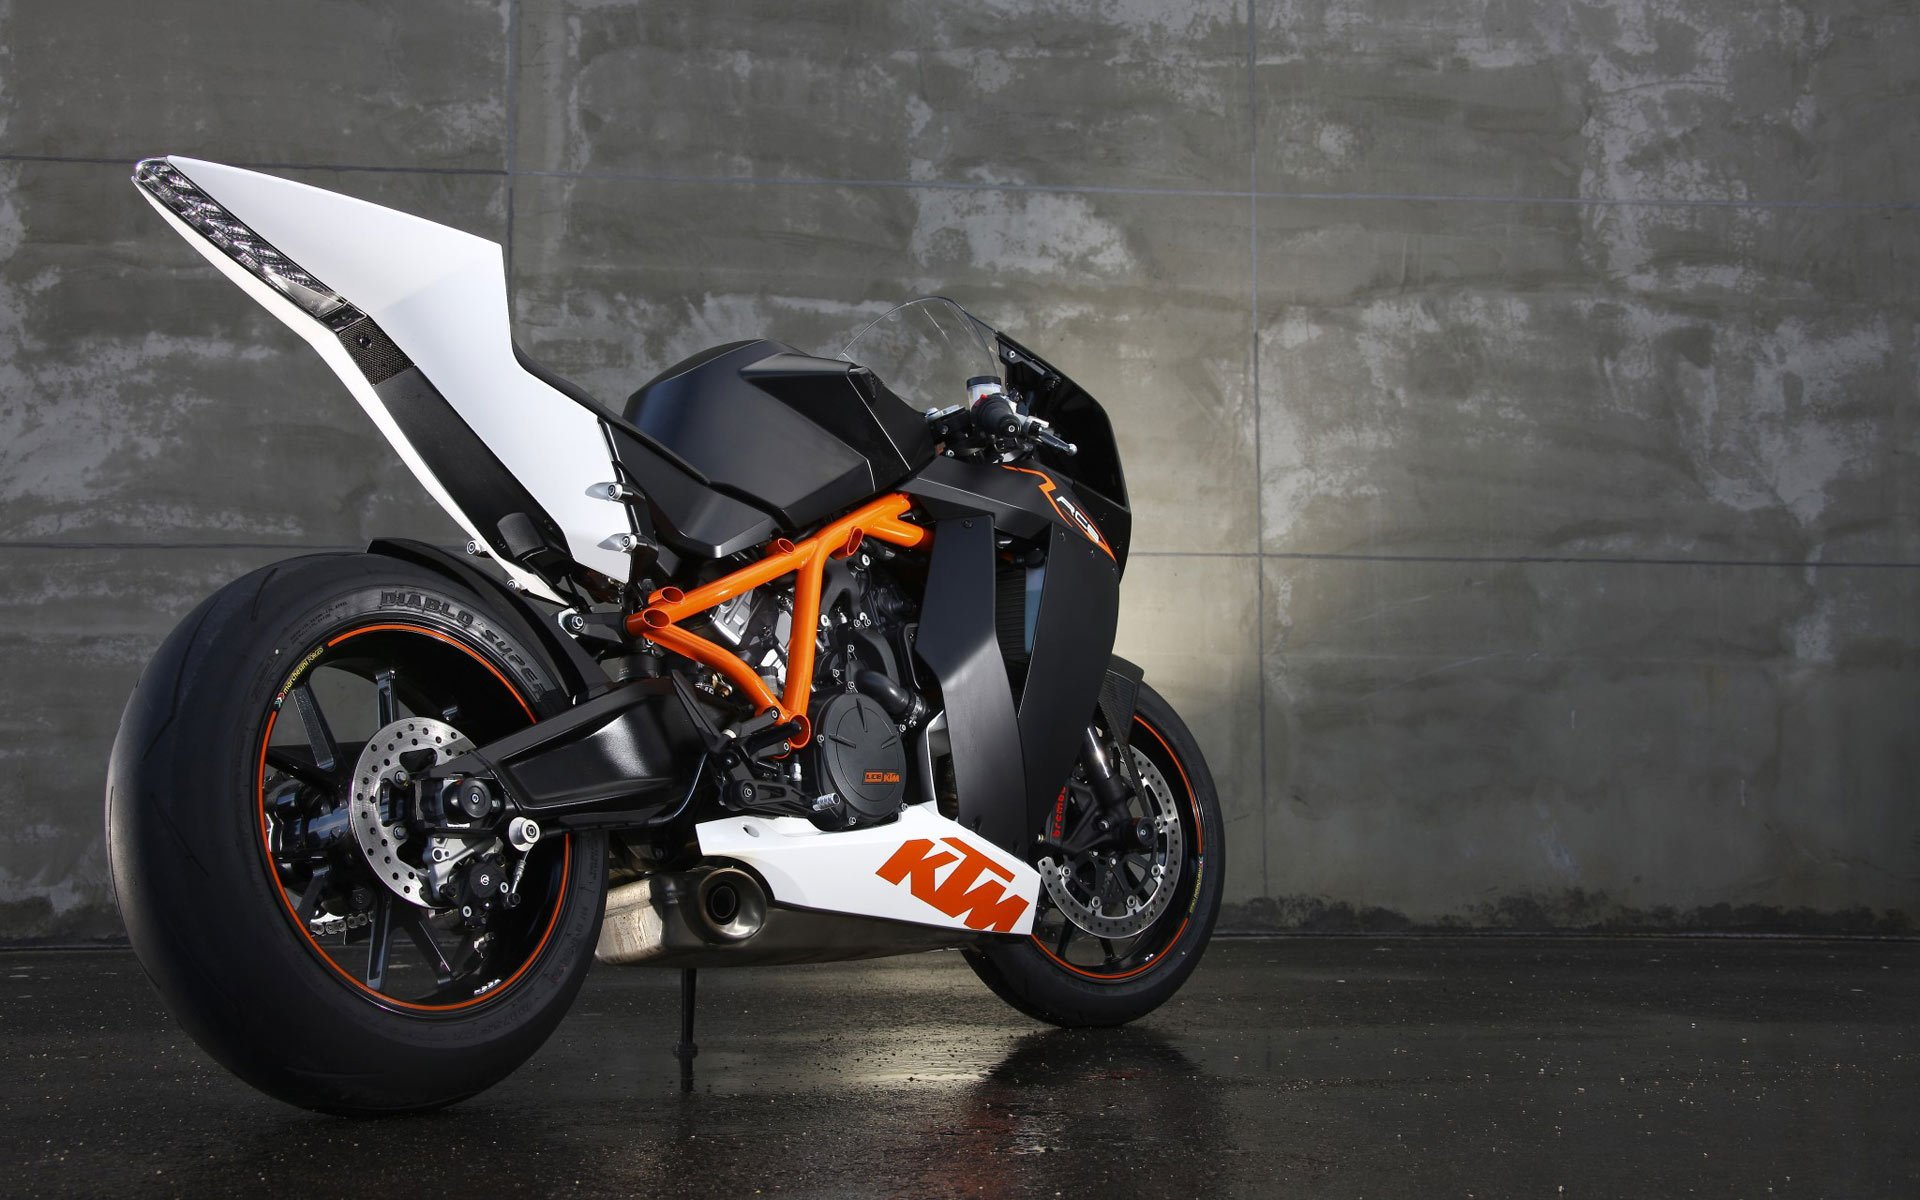 Ktm motorcycles hd wallpapers free wallaper downloads ktm sport - Ktm 1190 Rc8 R Wallpapers Hd Wallpapers